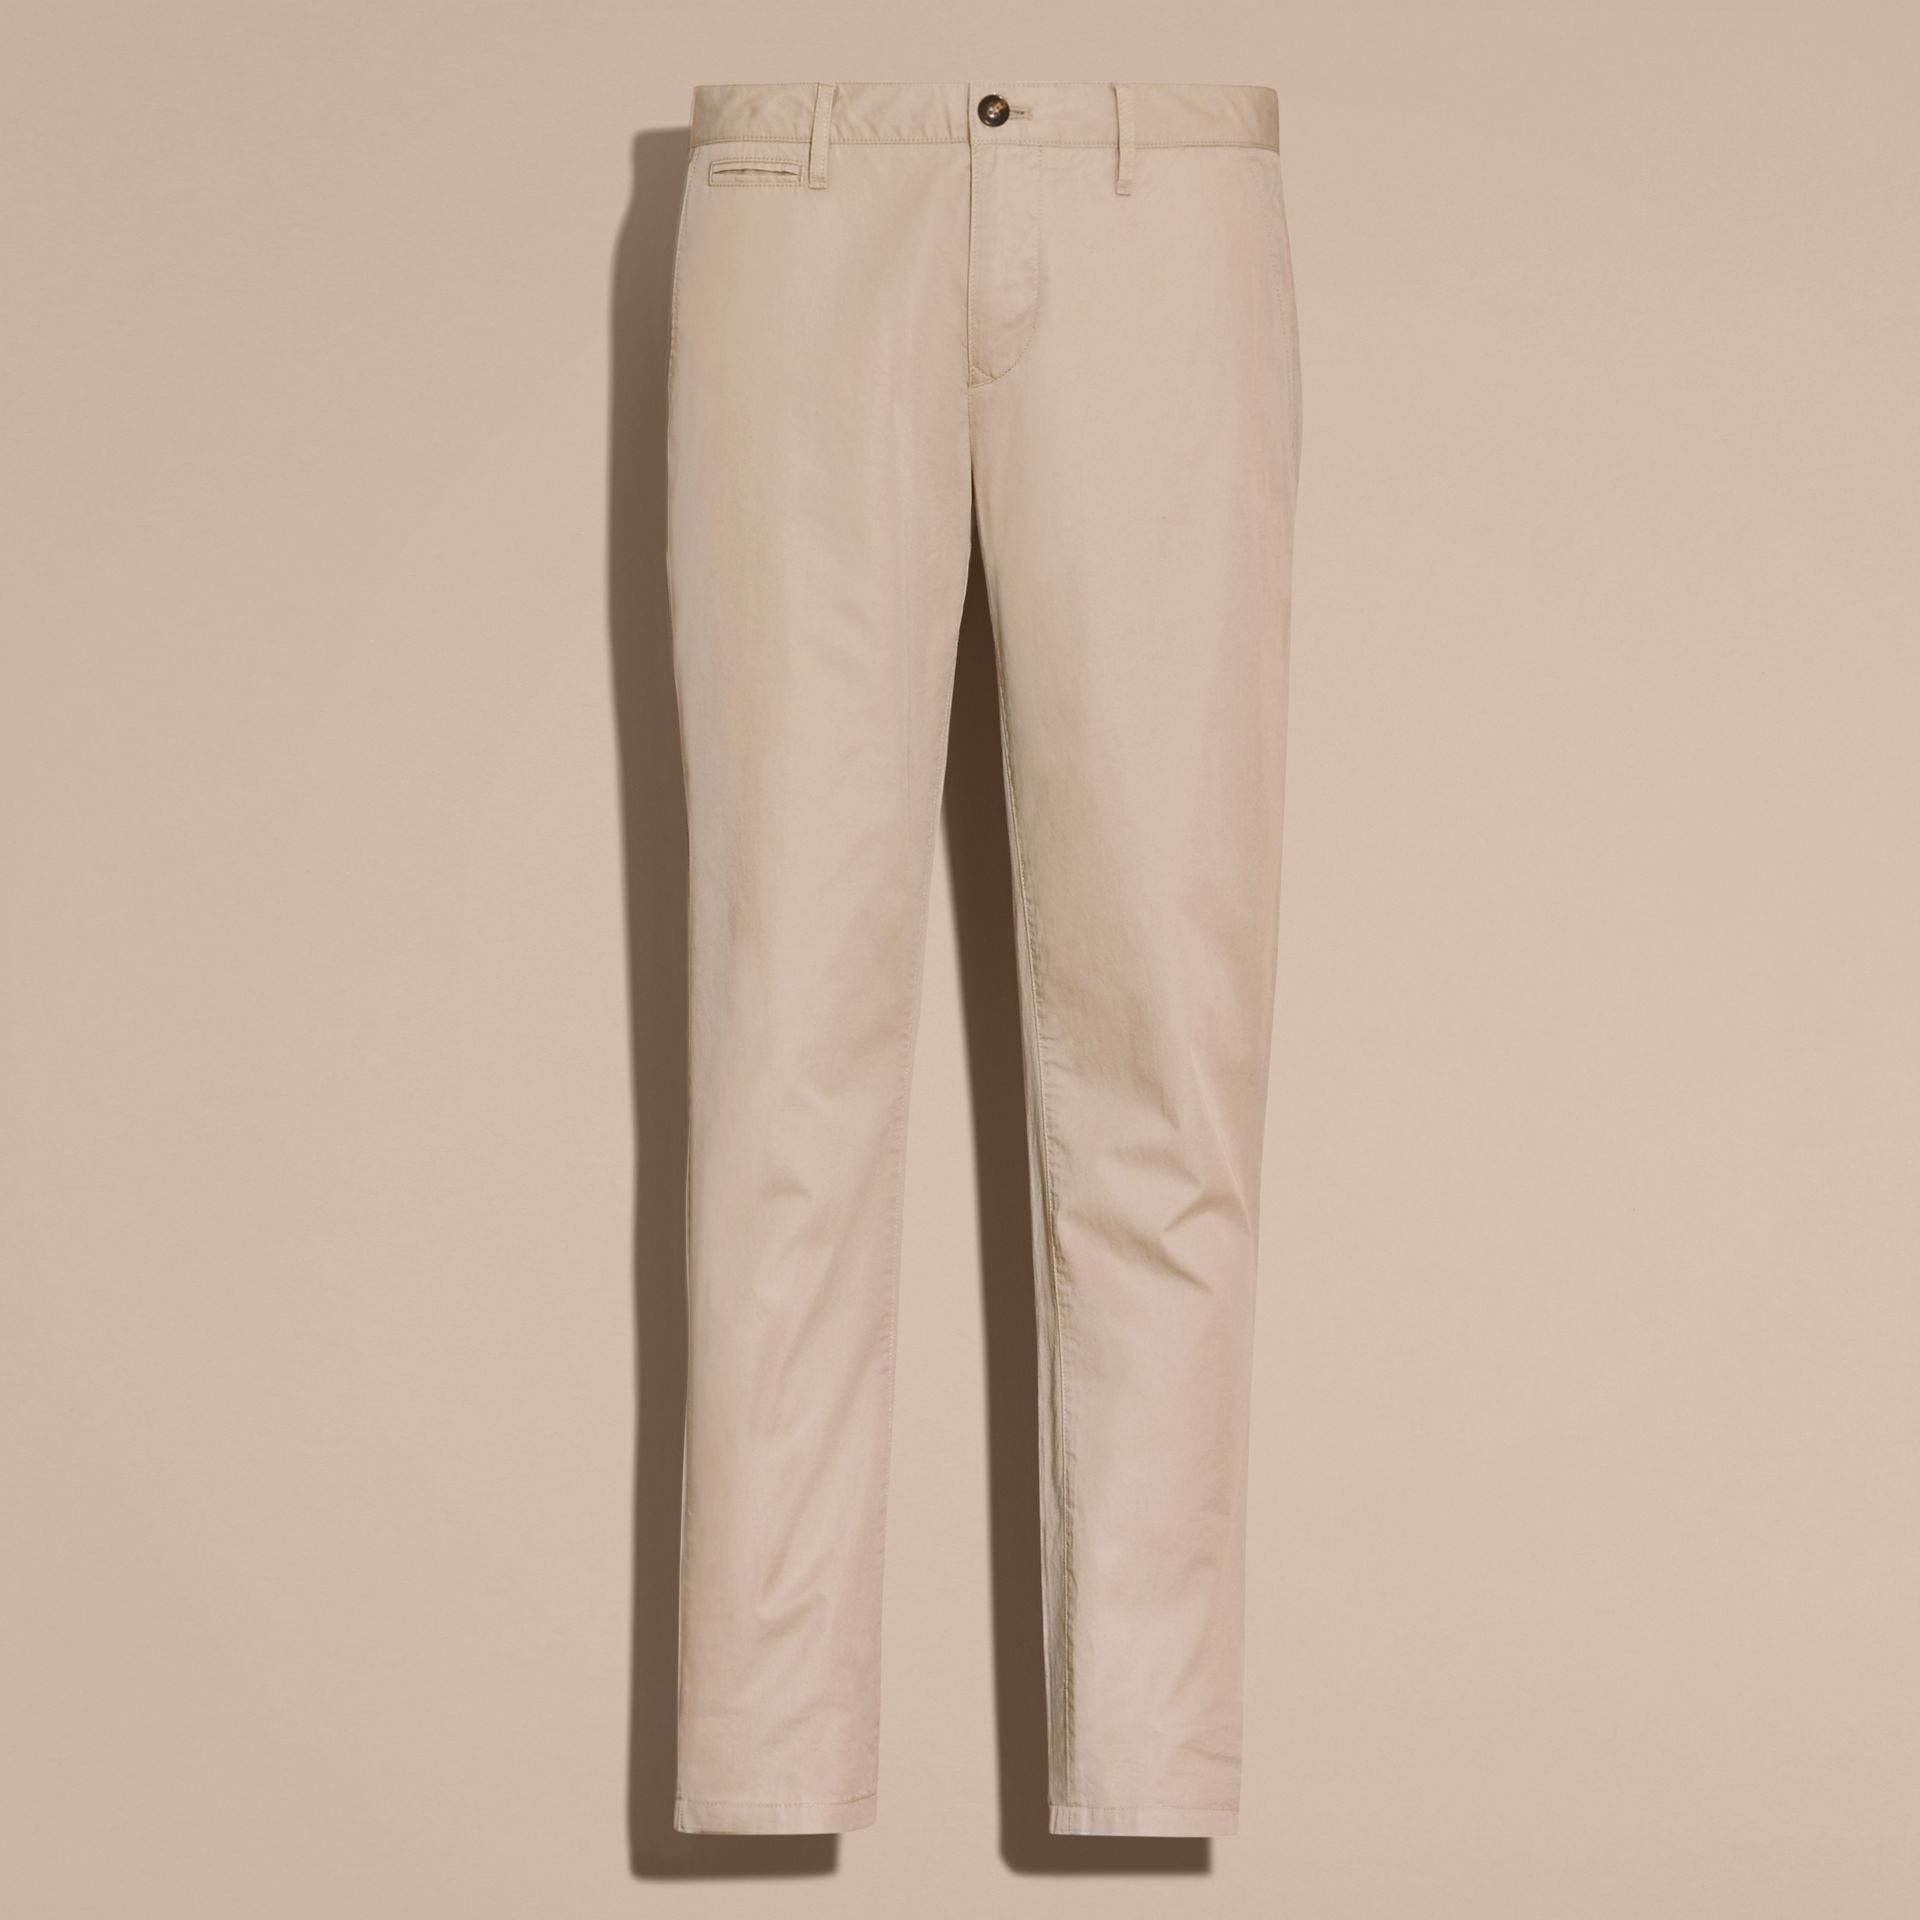 Slim Fit Cotton Chinos in Taupe - Men | Burberry - gallery image 4